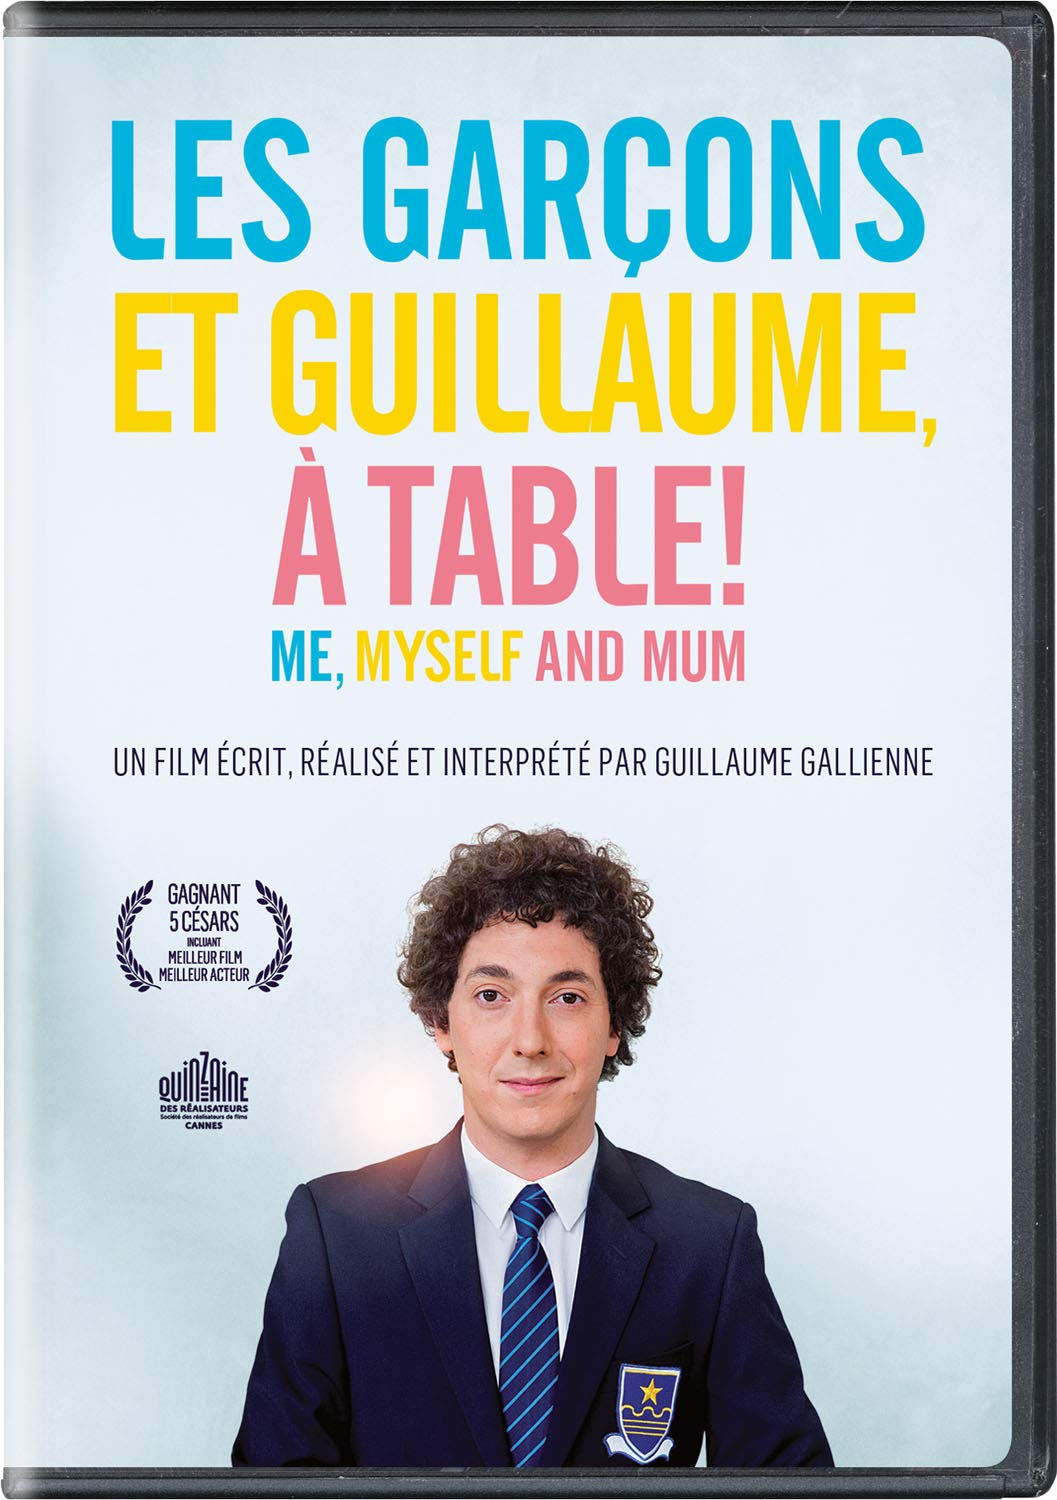 Amazon.com: Me, Myself and Mum / Les Garçons Et Guillaume, à Table